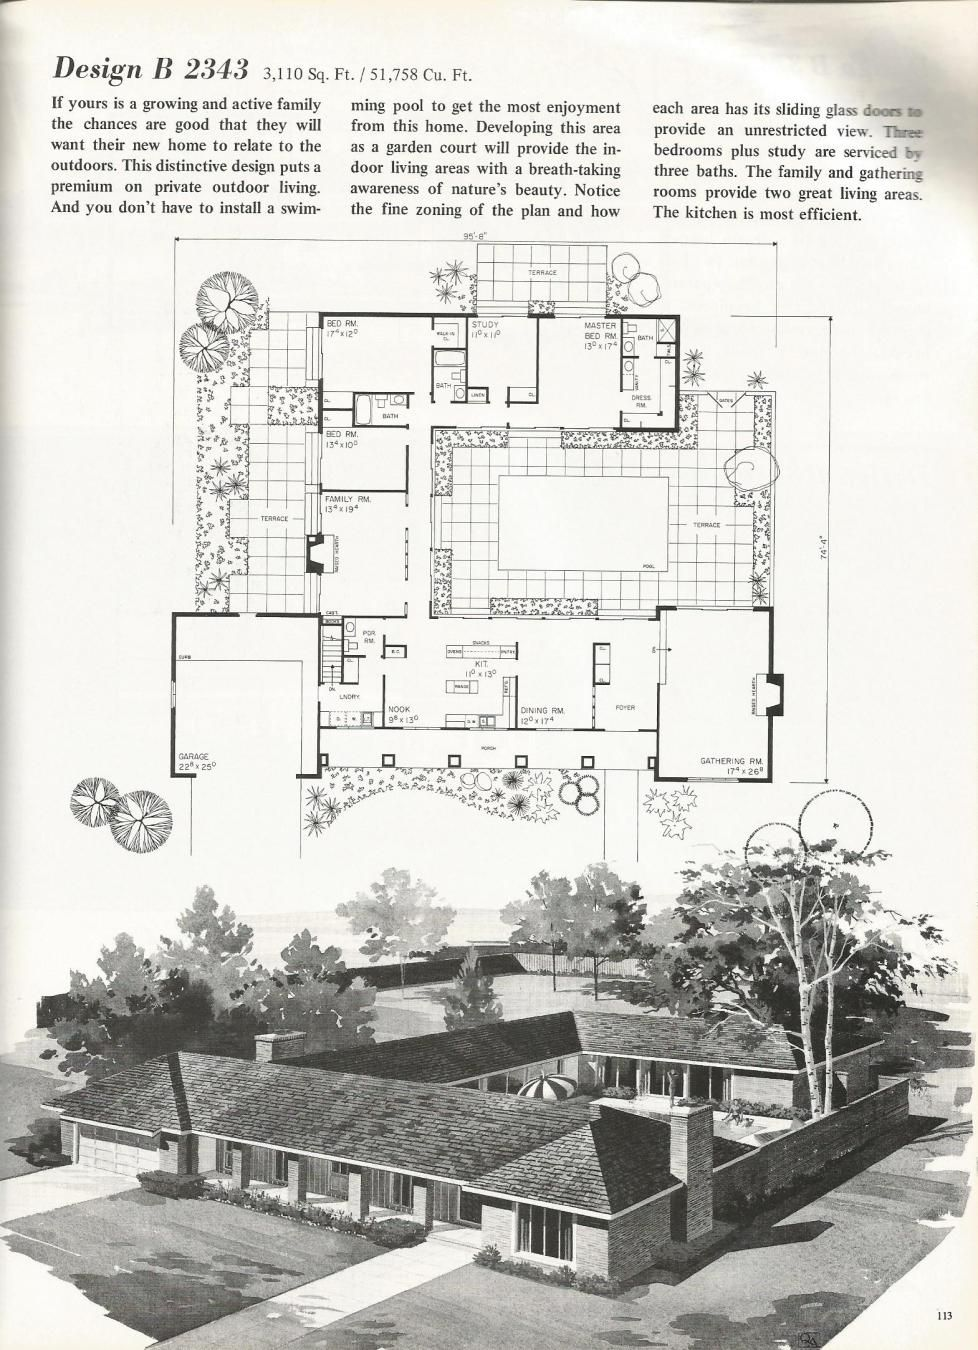 Gartenplanung Ipad Vintage House Plans 2000 Square Feet Mid Century Homes